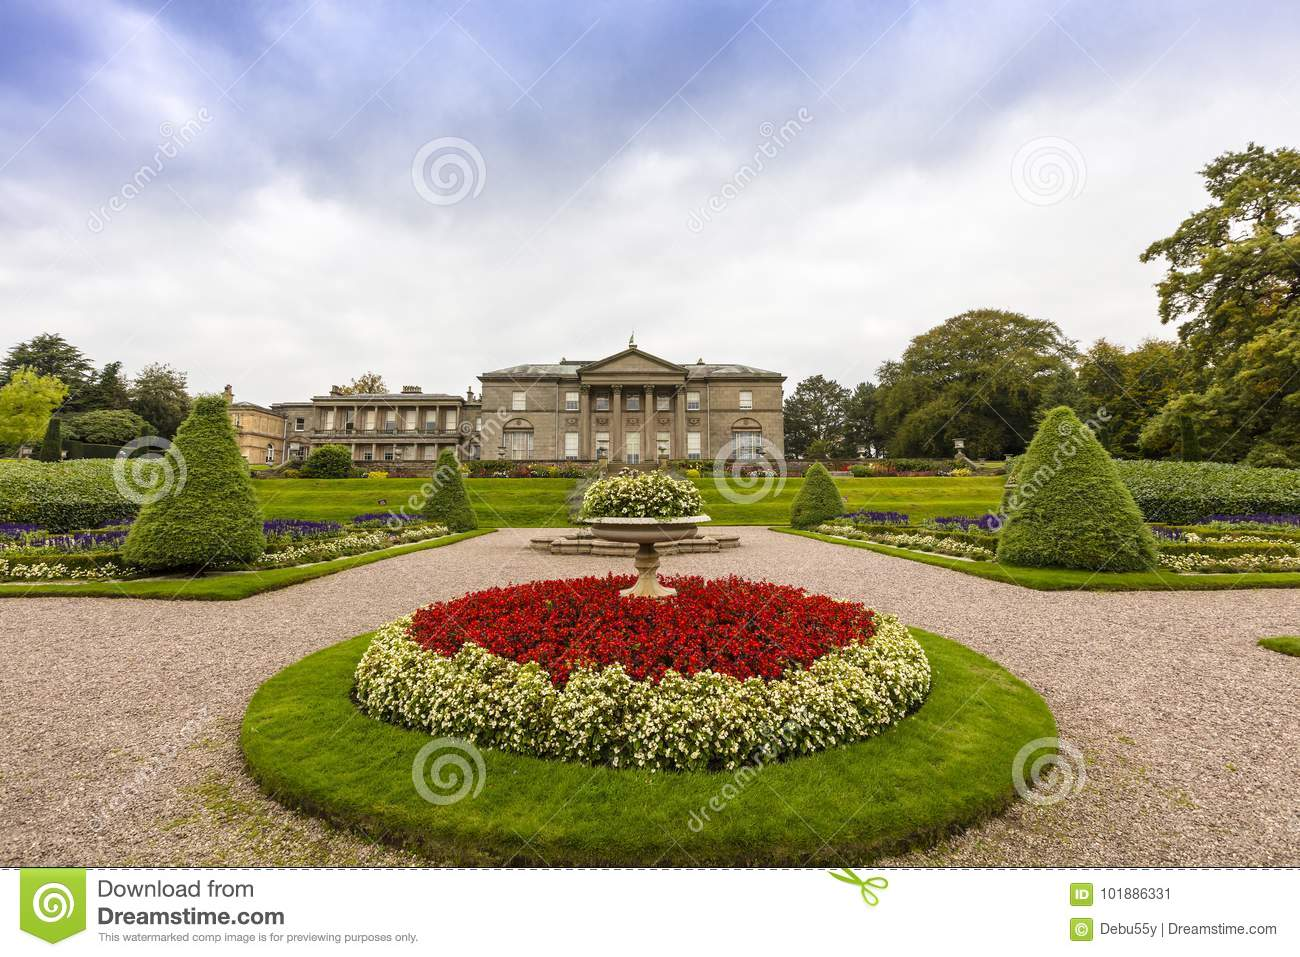 Landscaped Gardens In Tatton Park. Stock Image - Image of ...